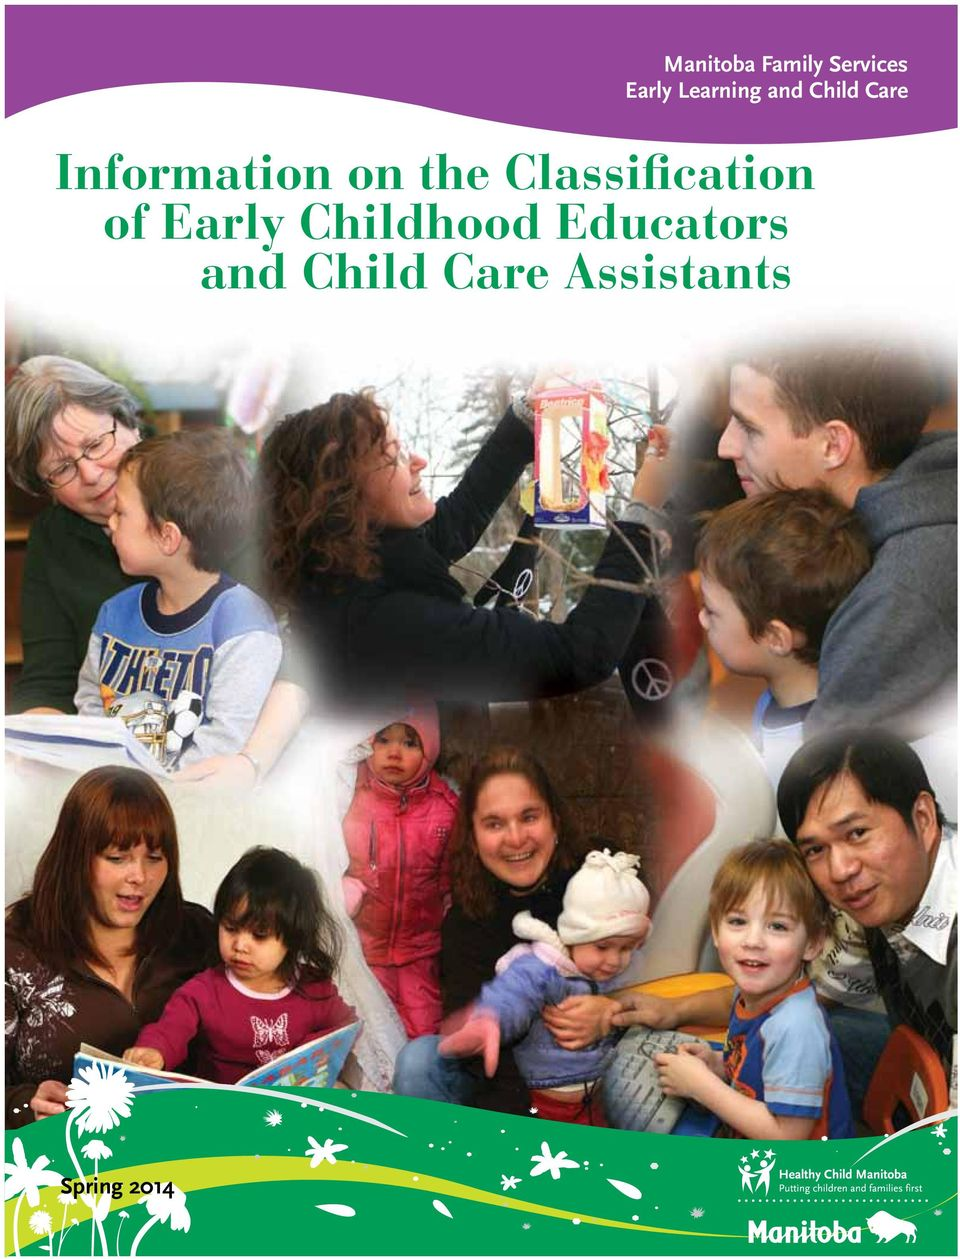 the Classification of Early Childhood